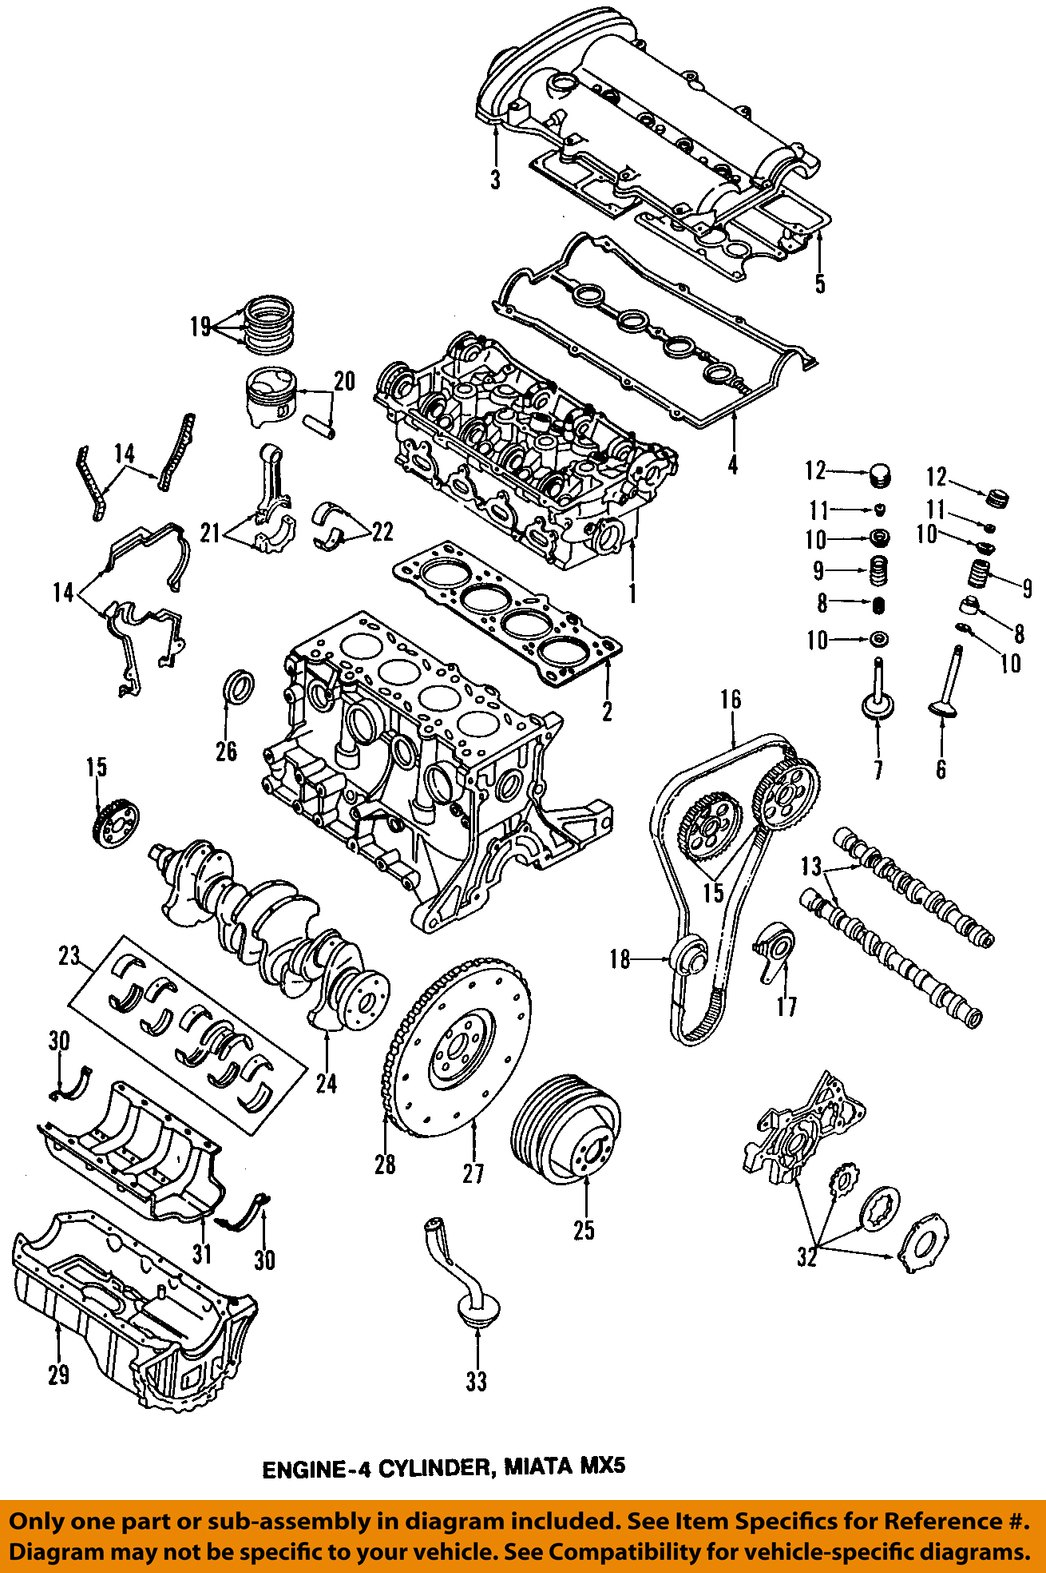 hight resolution of 92 miata engine parts diagram uvx schullieder de u202292 miata engine parts diagram wiring library